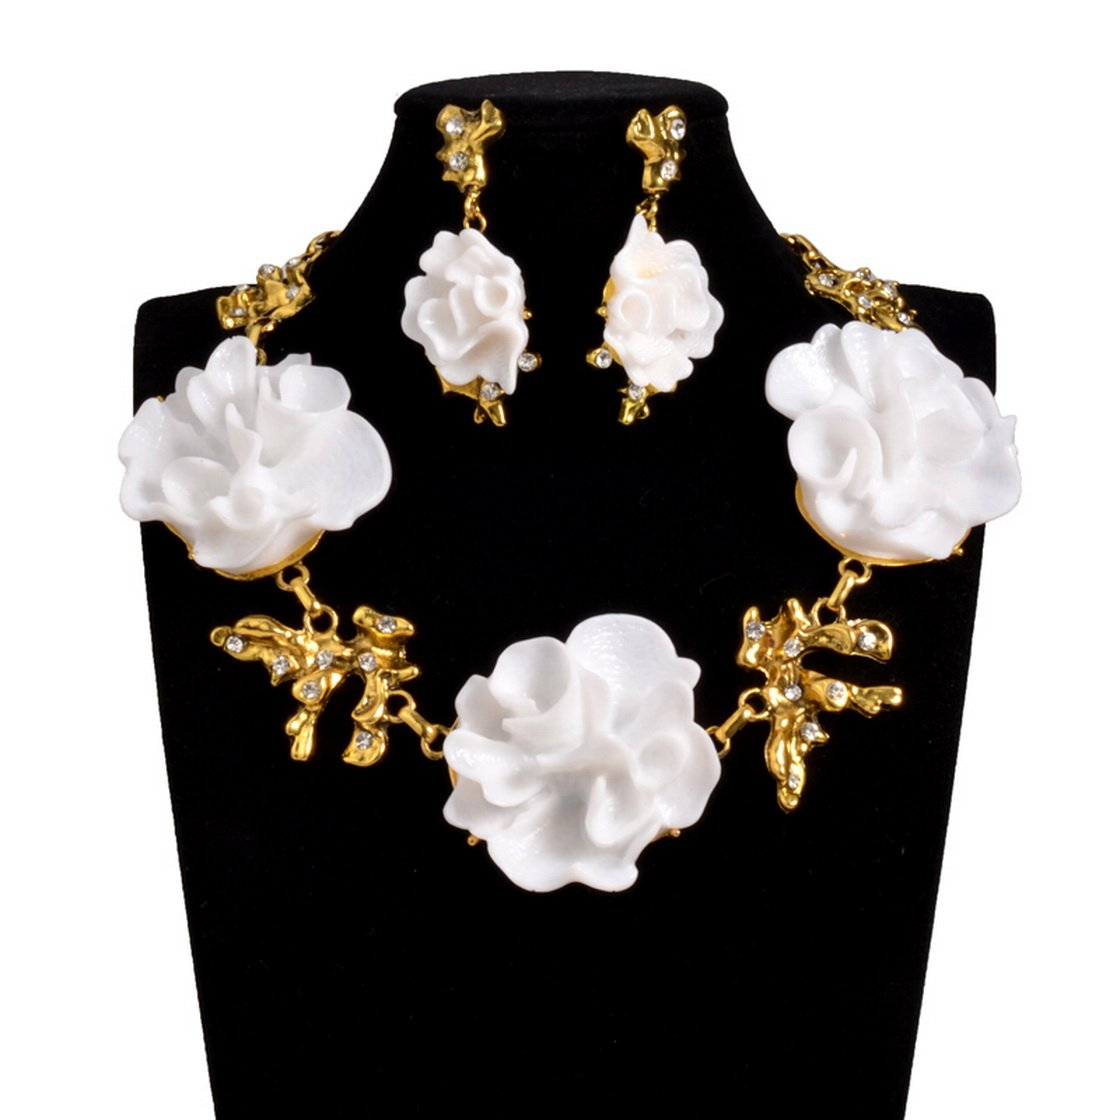 PSNECK Nigeria wedding Big Flower Fashion Jewelry sets Statement Choker Necklace african beads jewelry set PSEZY_VINTAGE_Necklace 0KX54VN352